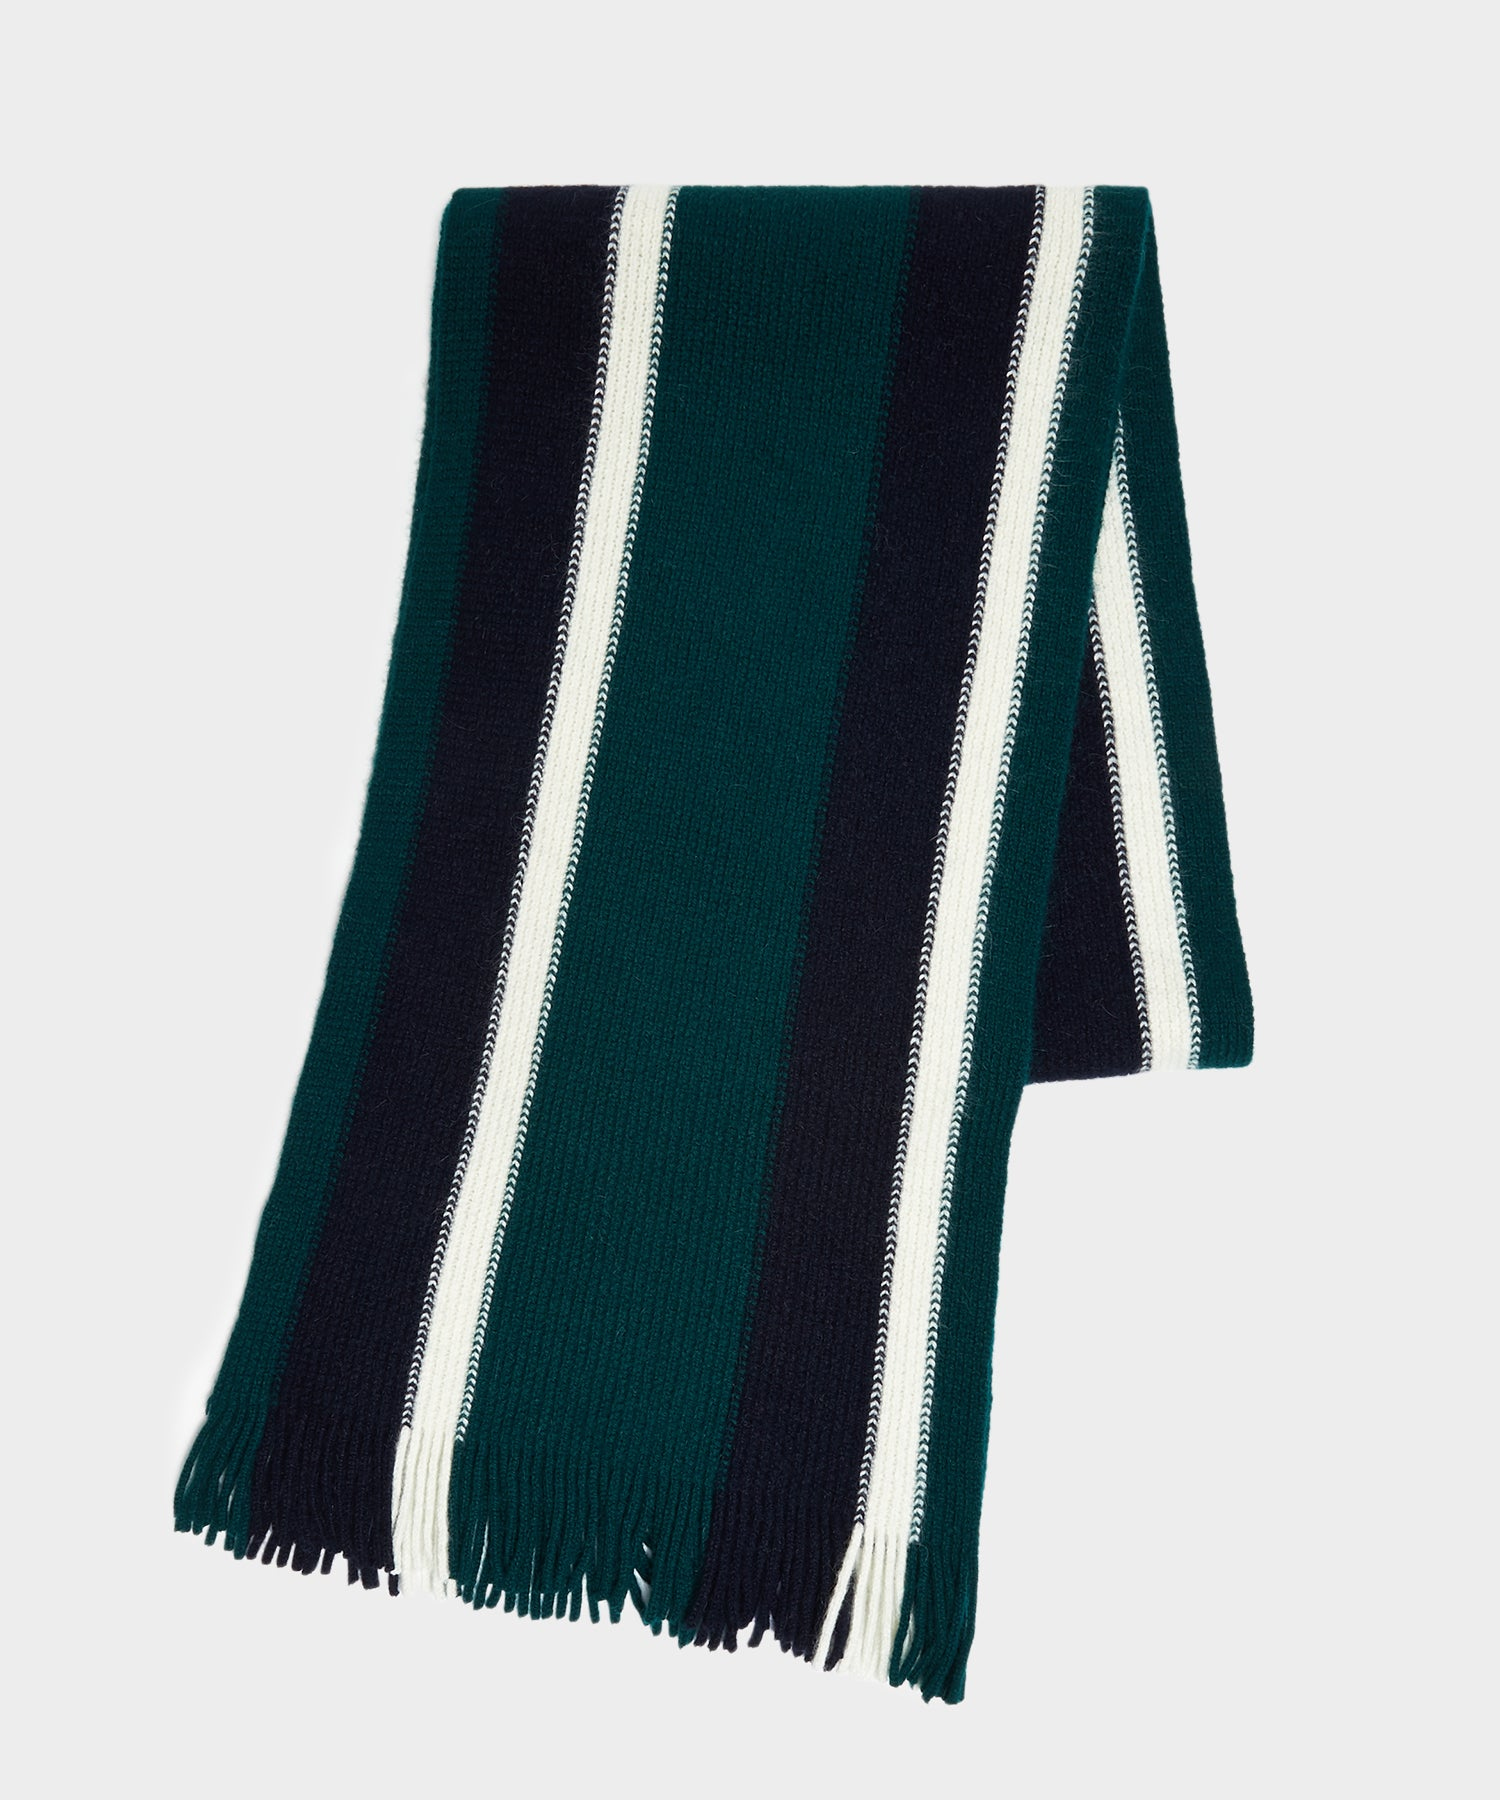 Drake's Collegiate Striped Scarf in Green